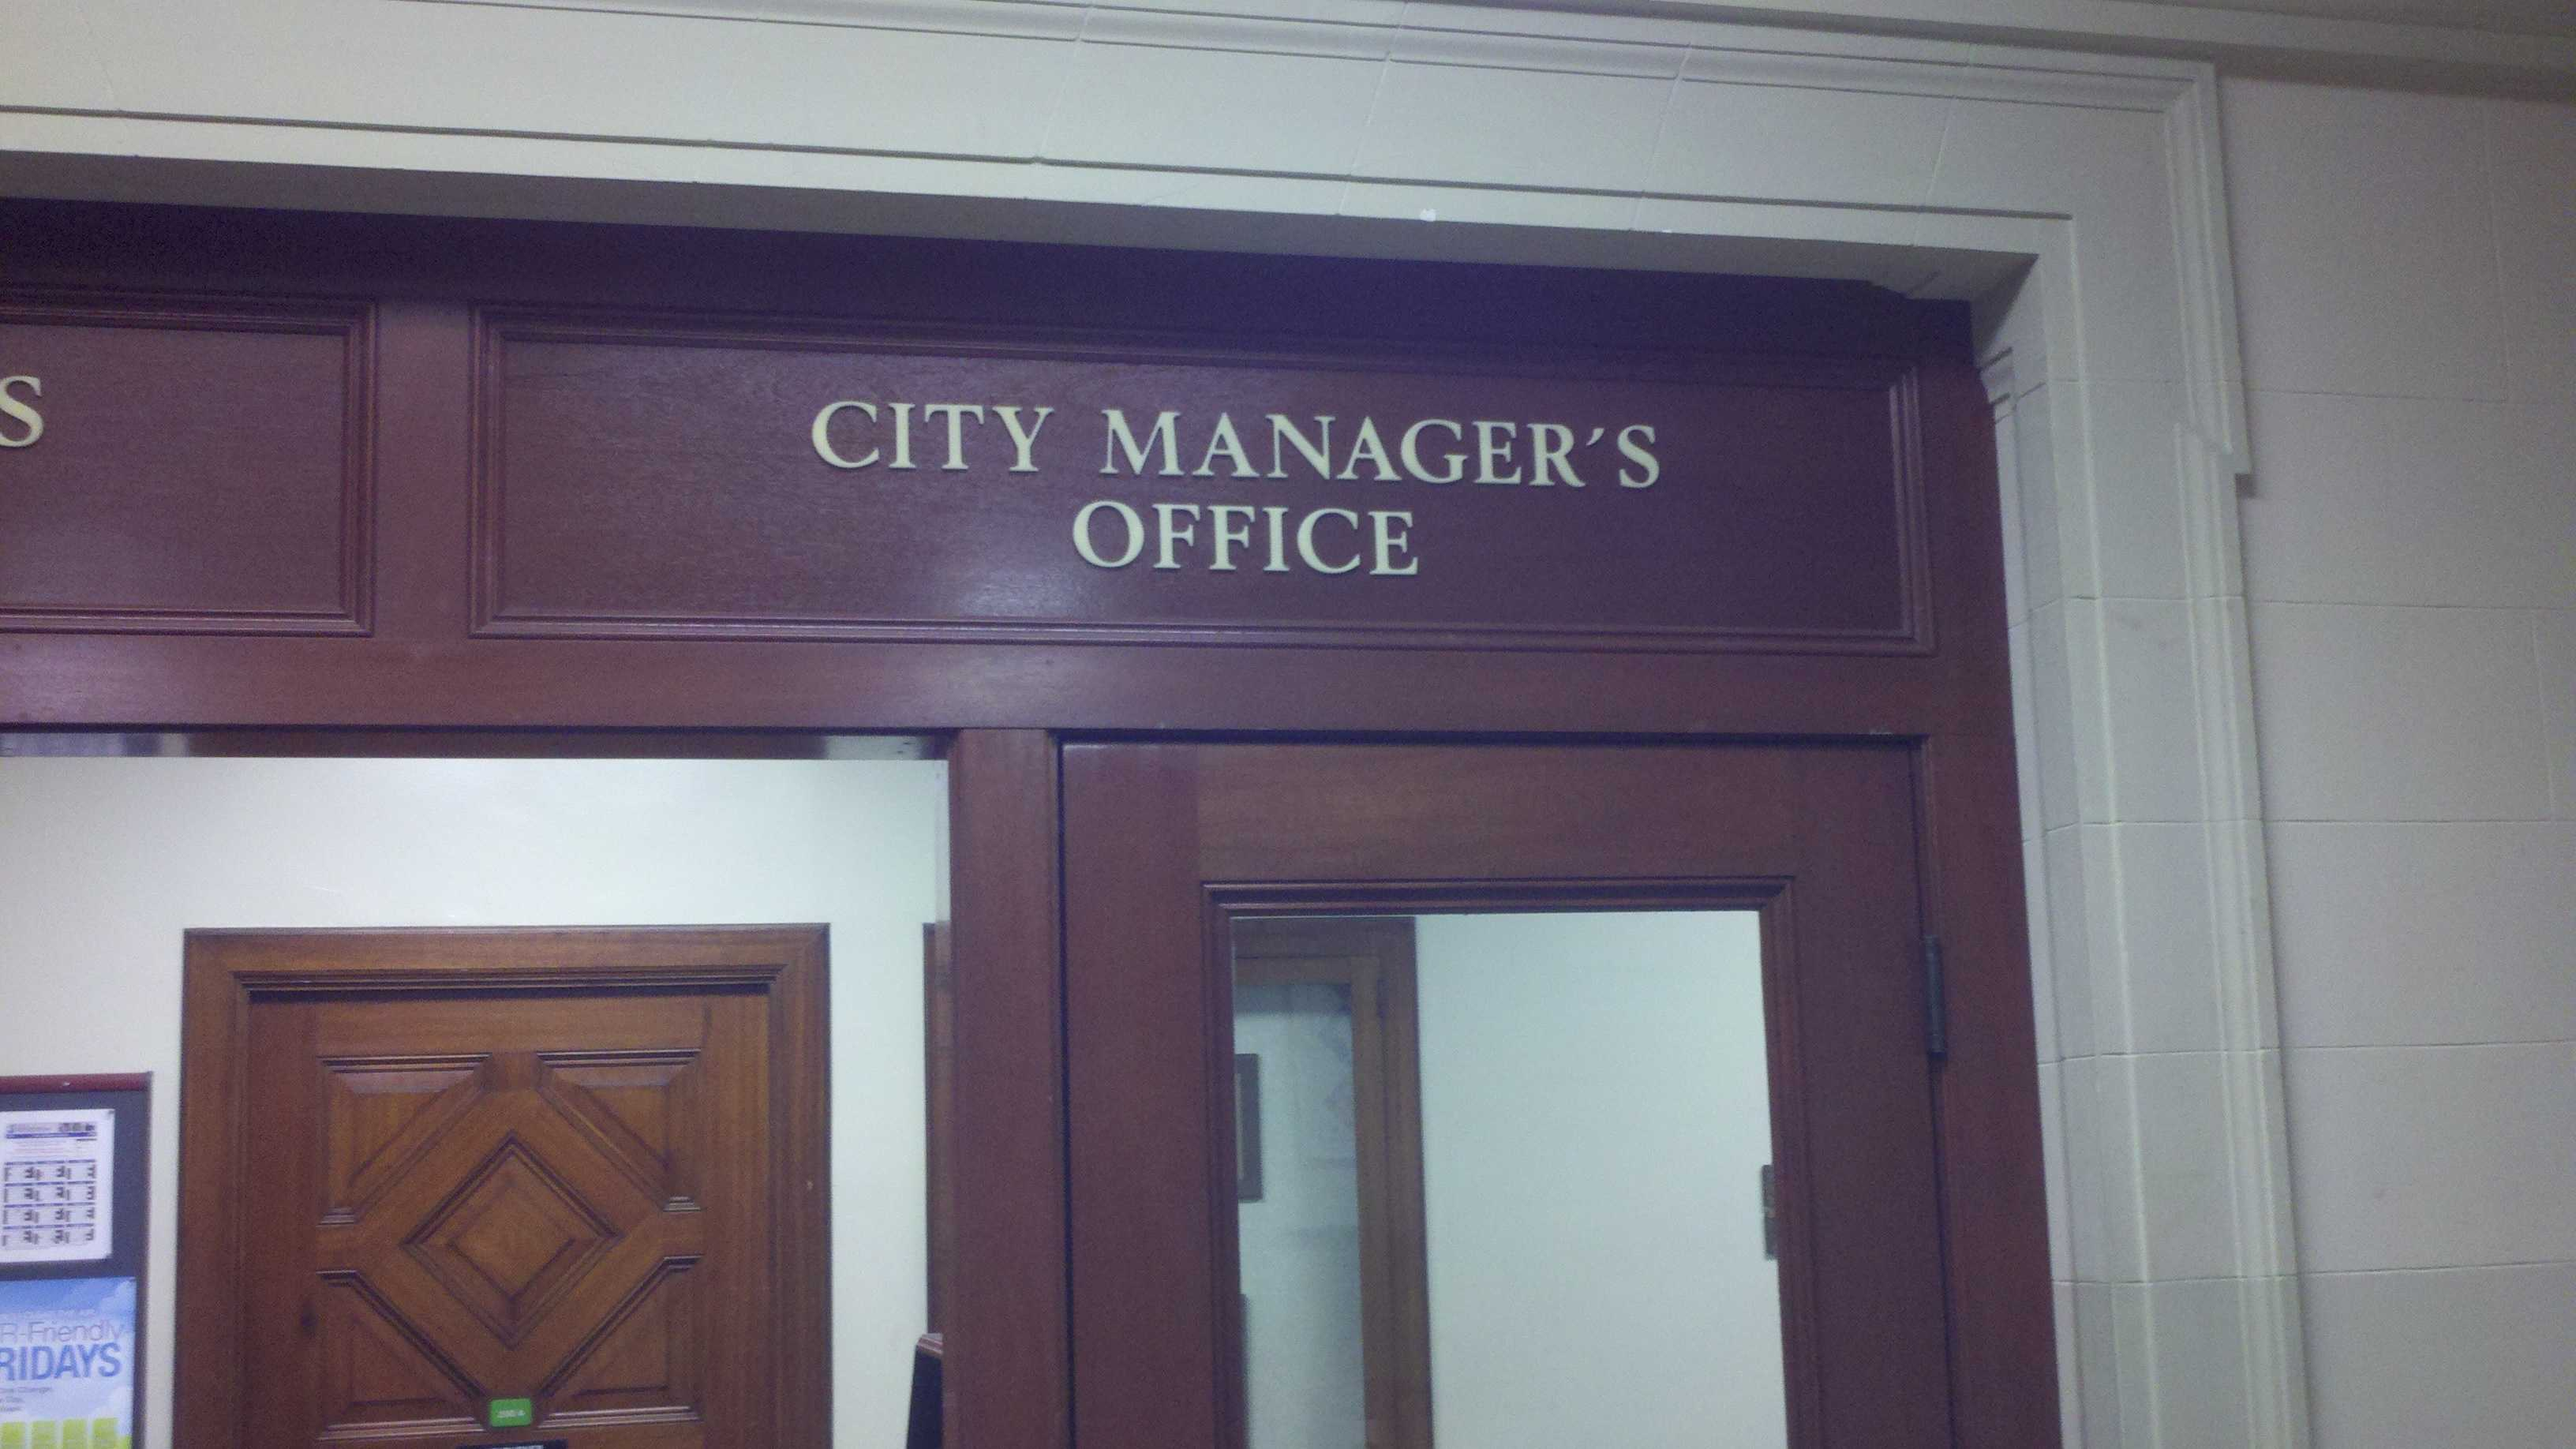 The Stockton City Manager's office (June 21, 2012)